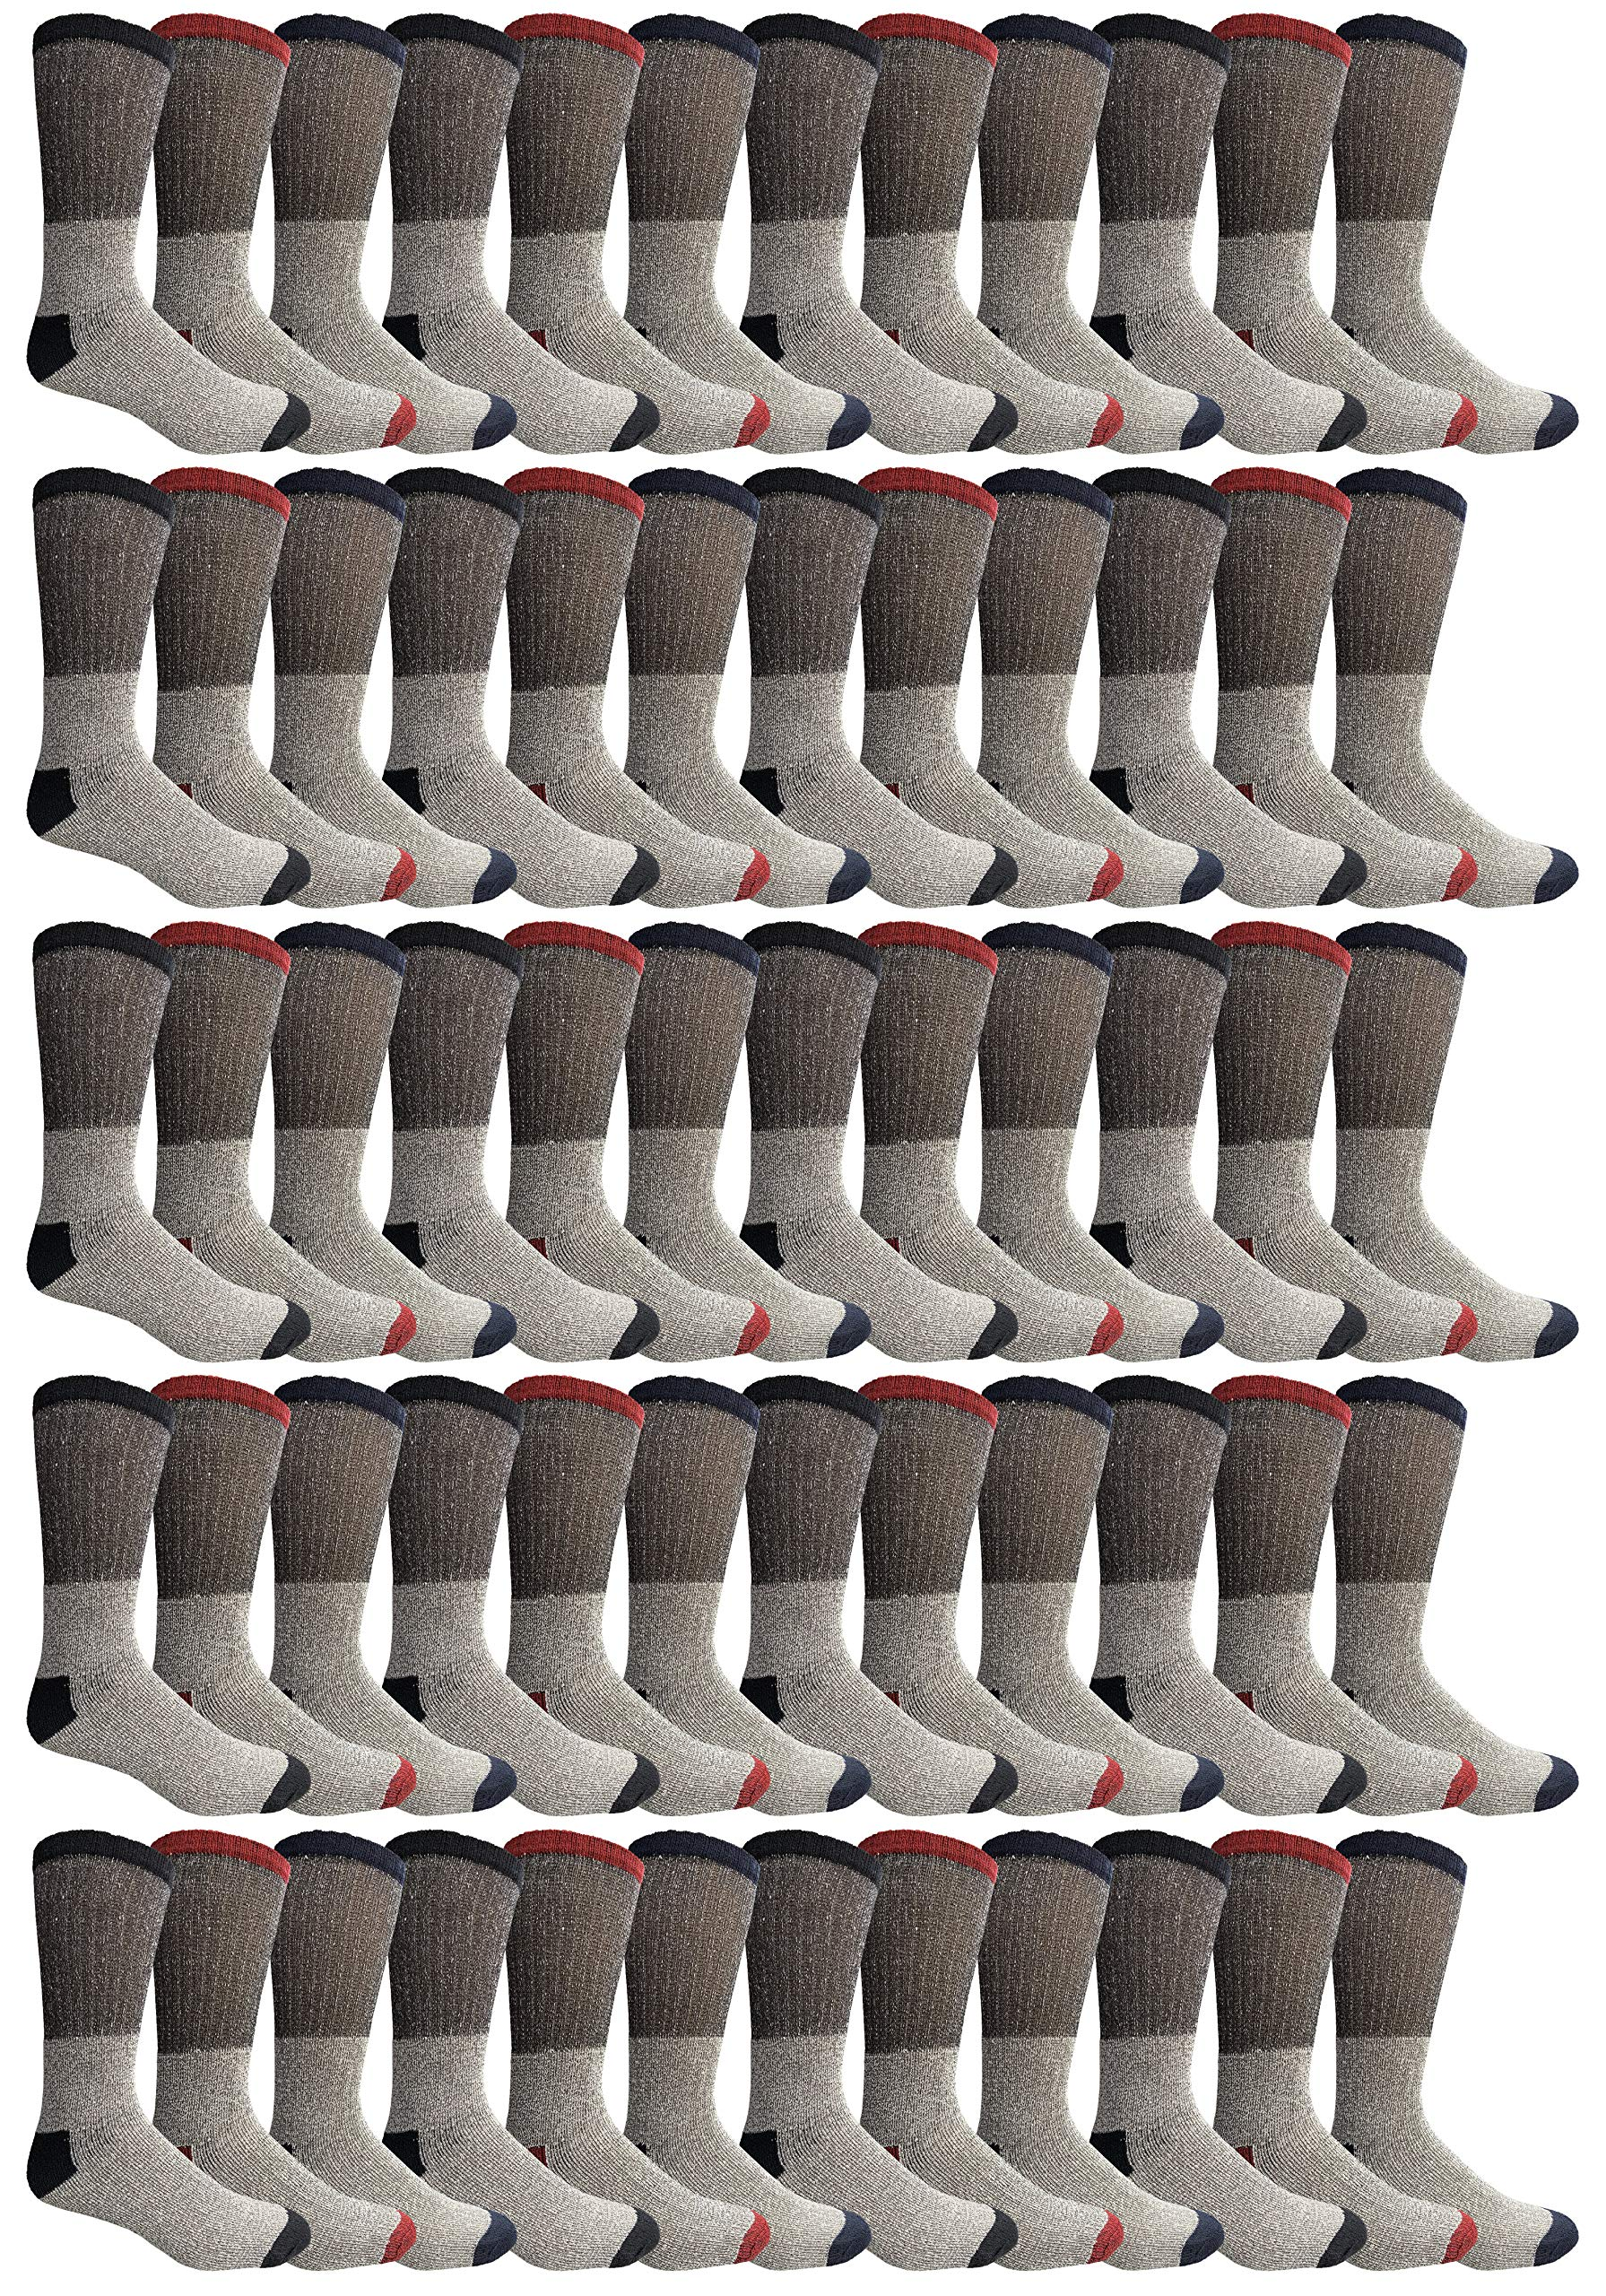 180 Pairs Case of Thermal Socks, Bulk Pack Thick Warm Winter Boot Sock, Extreme Weather, by Excell (60 Pairs Assorted, 10-13 (Mens)) by Wholesale Sock Deals